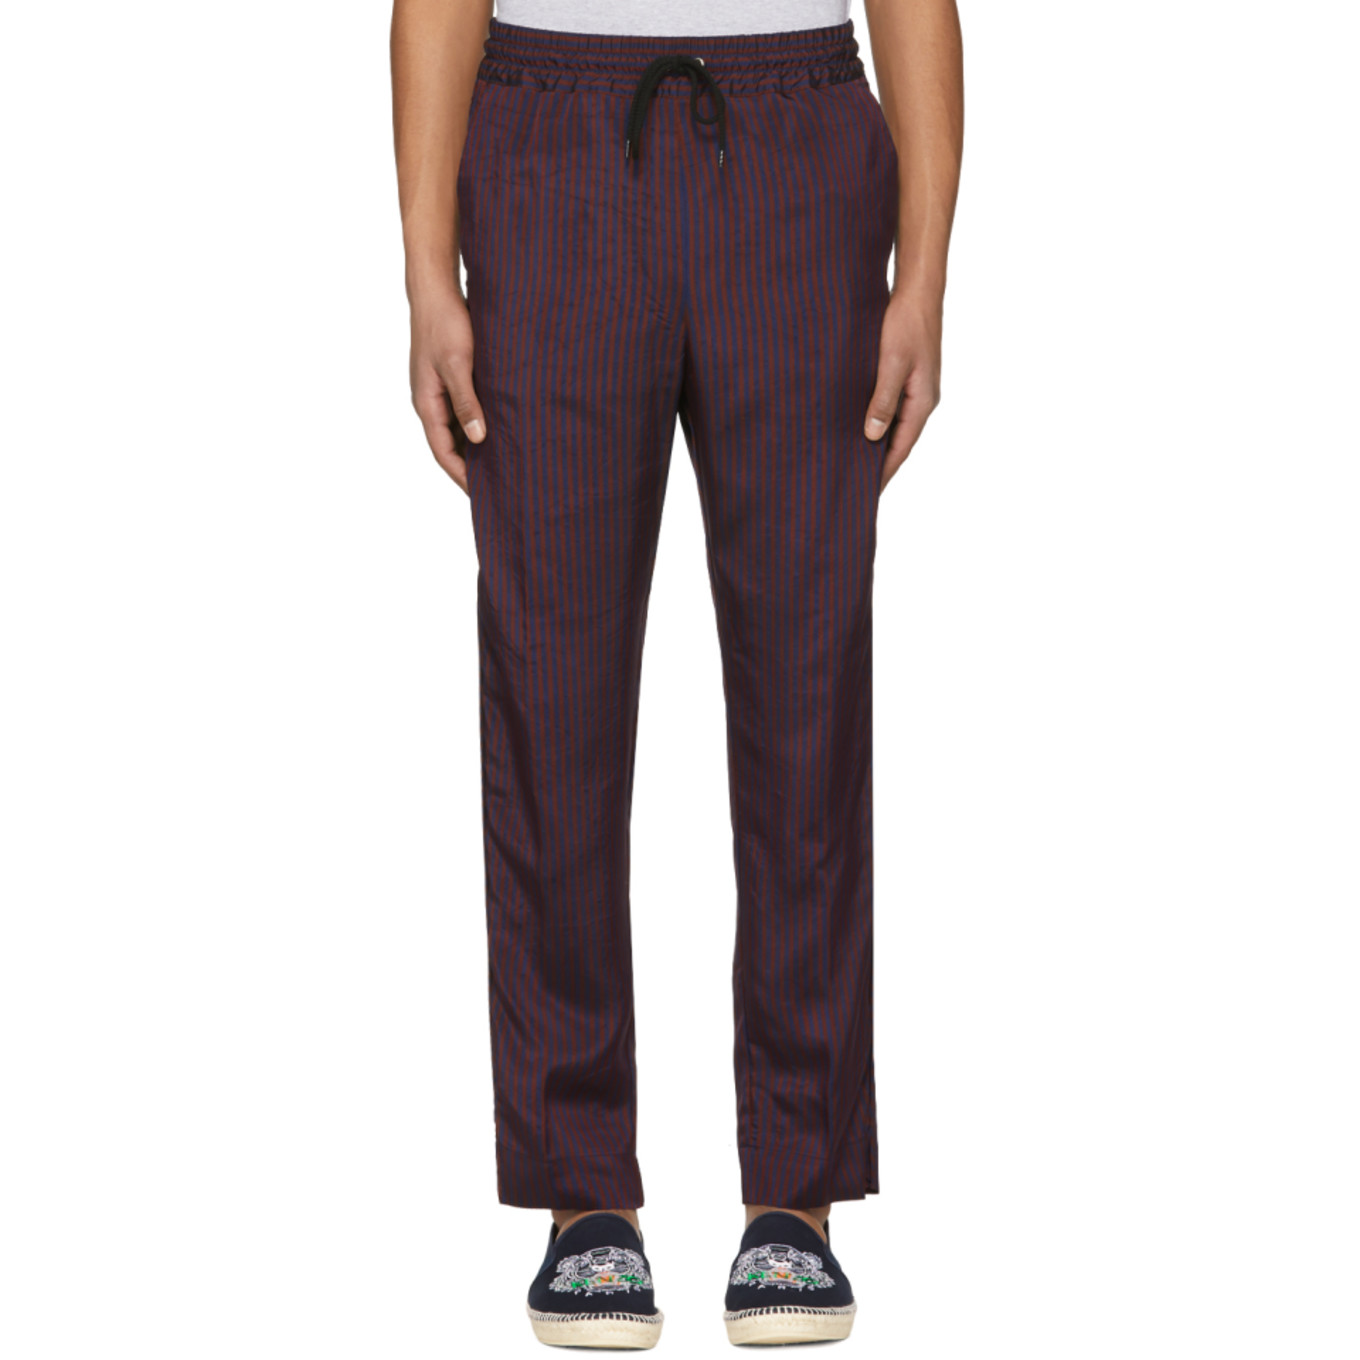 Burgundy & Navy Jacquard Stripe Trousers by Kenzo